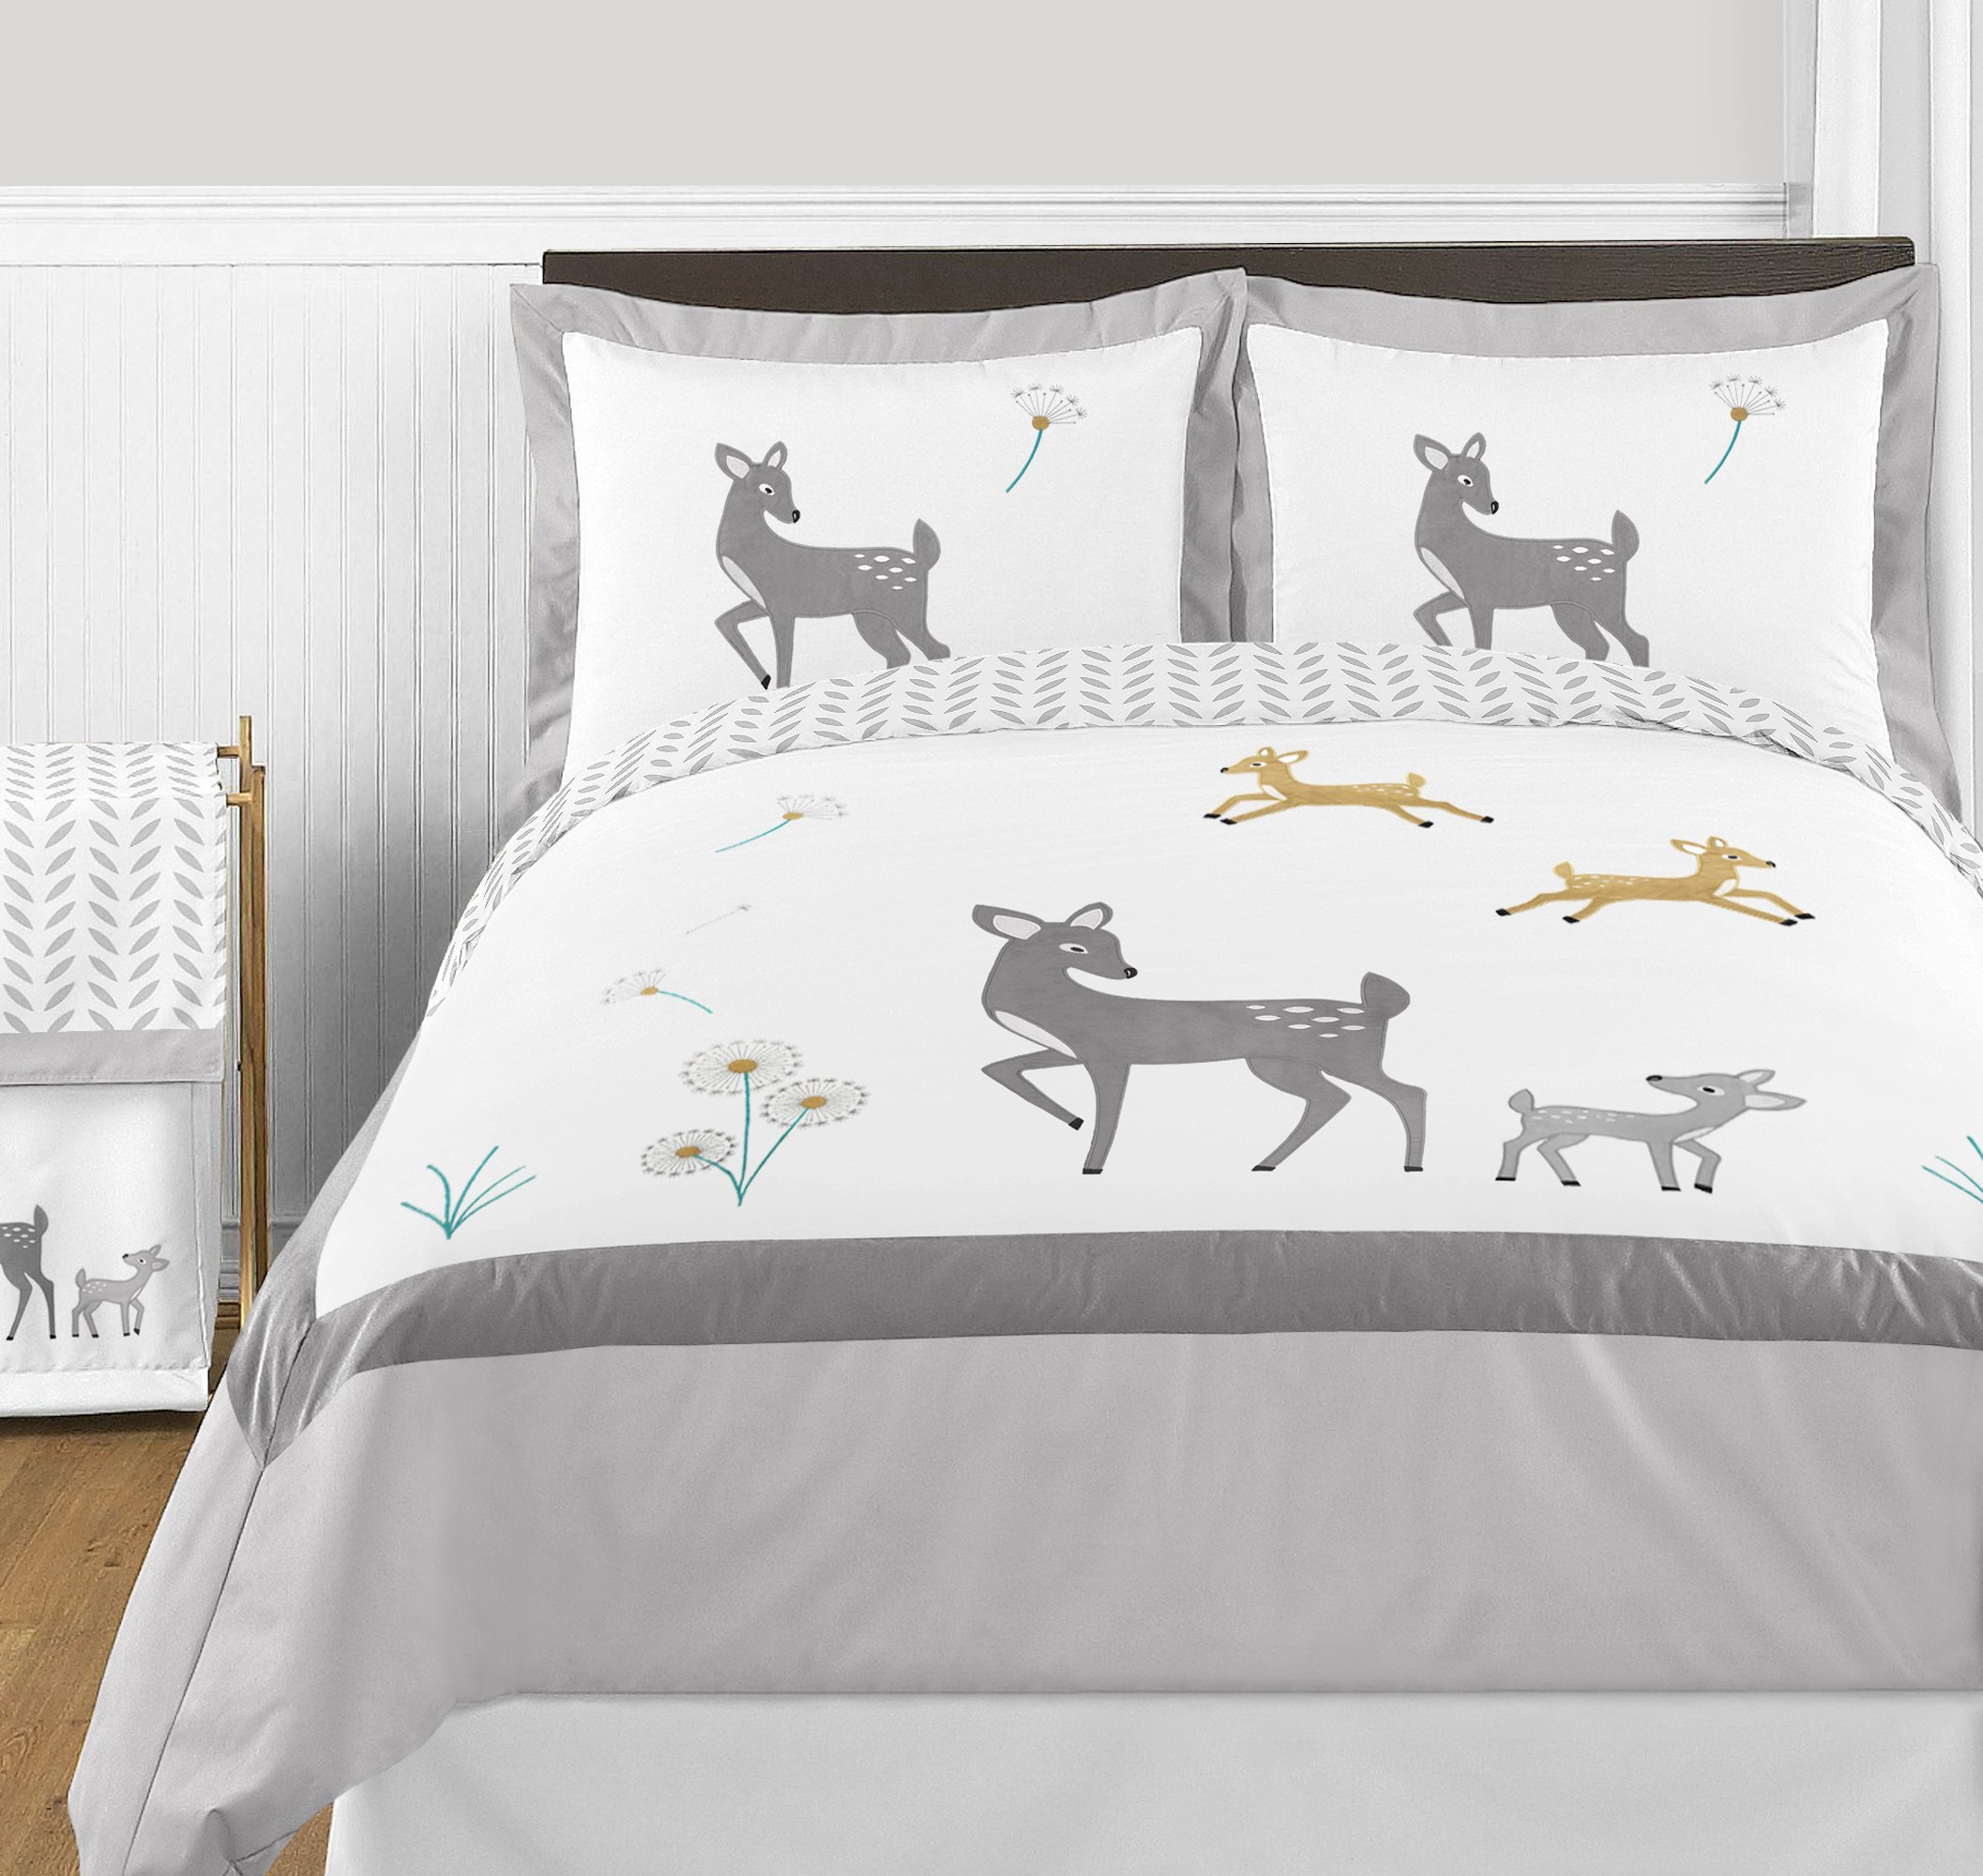 Sweet Jojo Designs 3-Piece Grey Gold and White Forest Deer and Dandelion Girl or Boy Full/Queen Bedding Children's Bedding Set